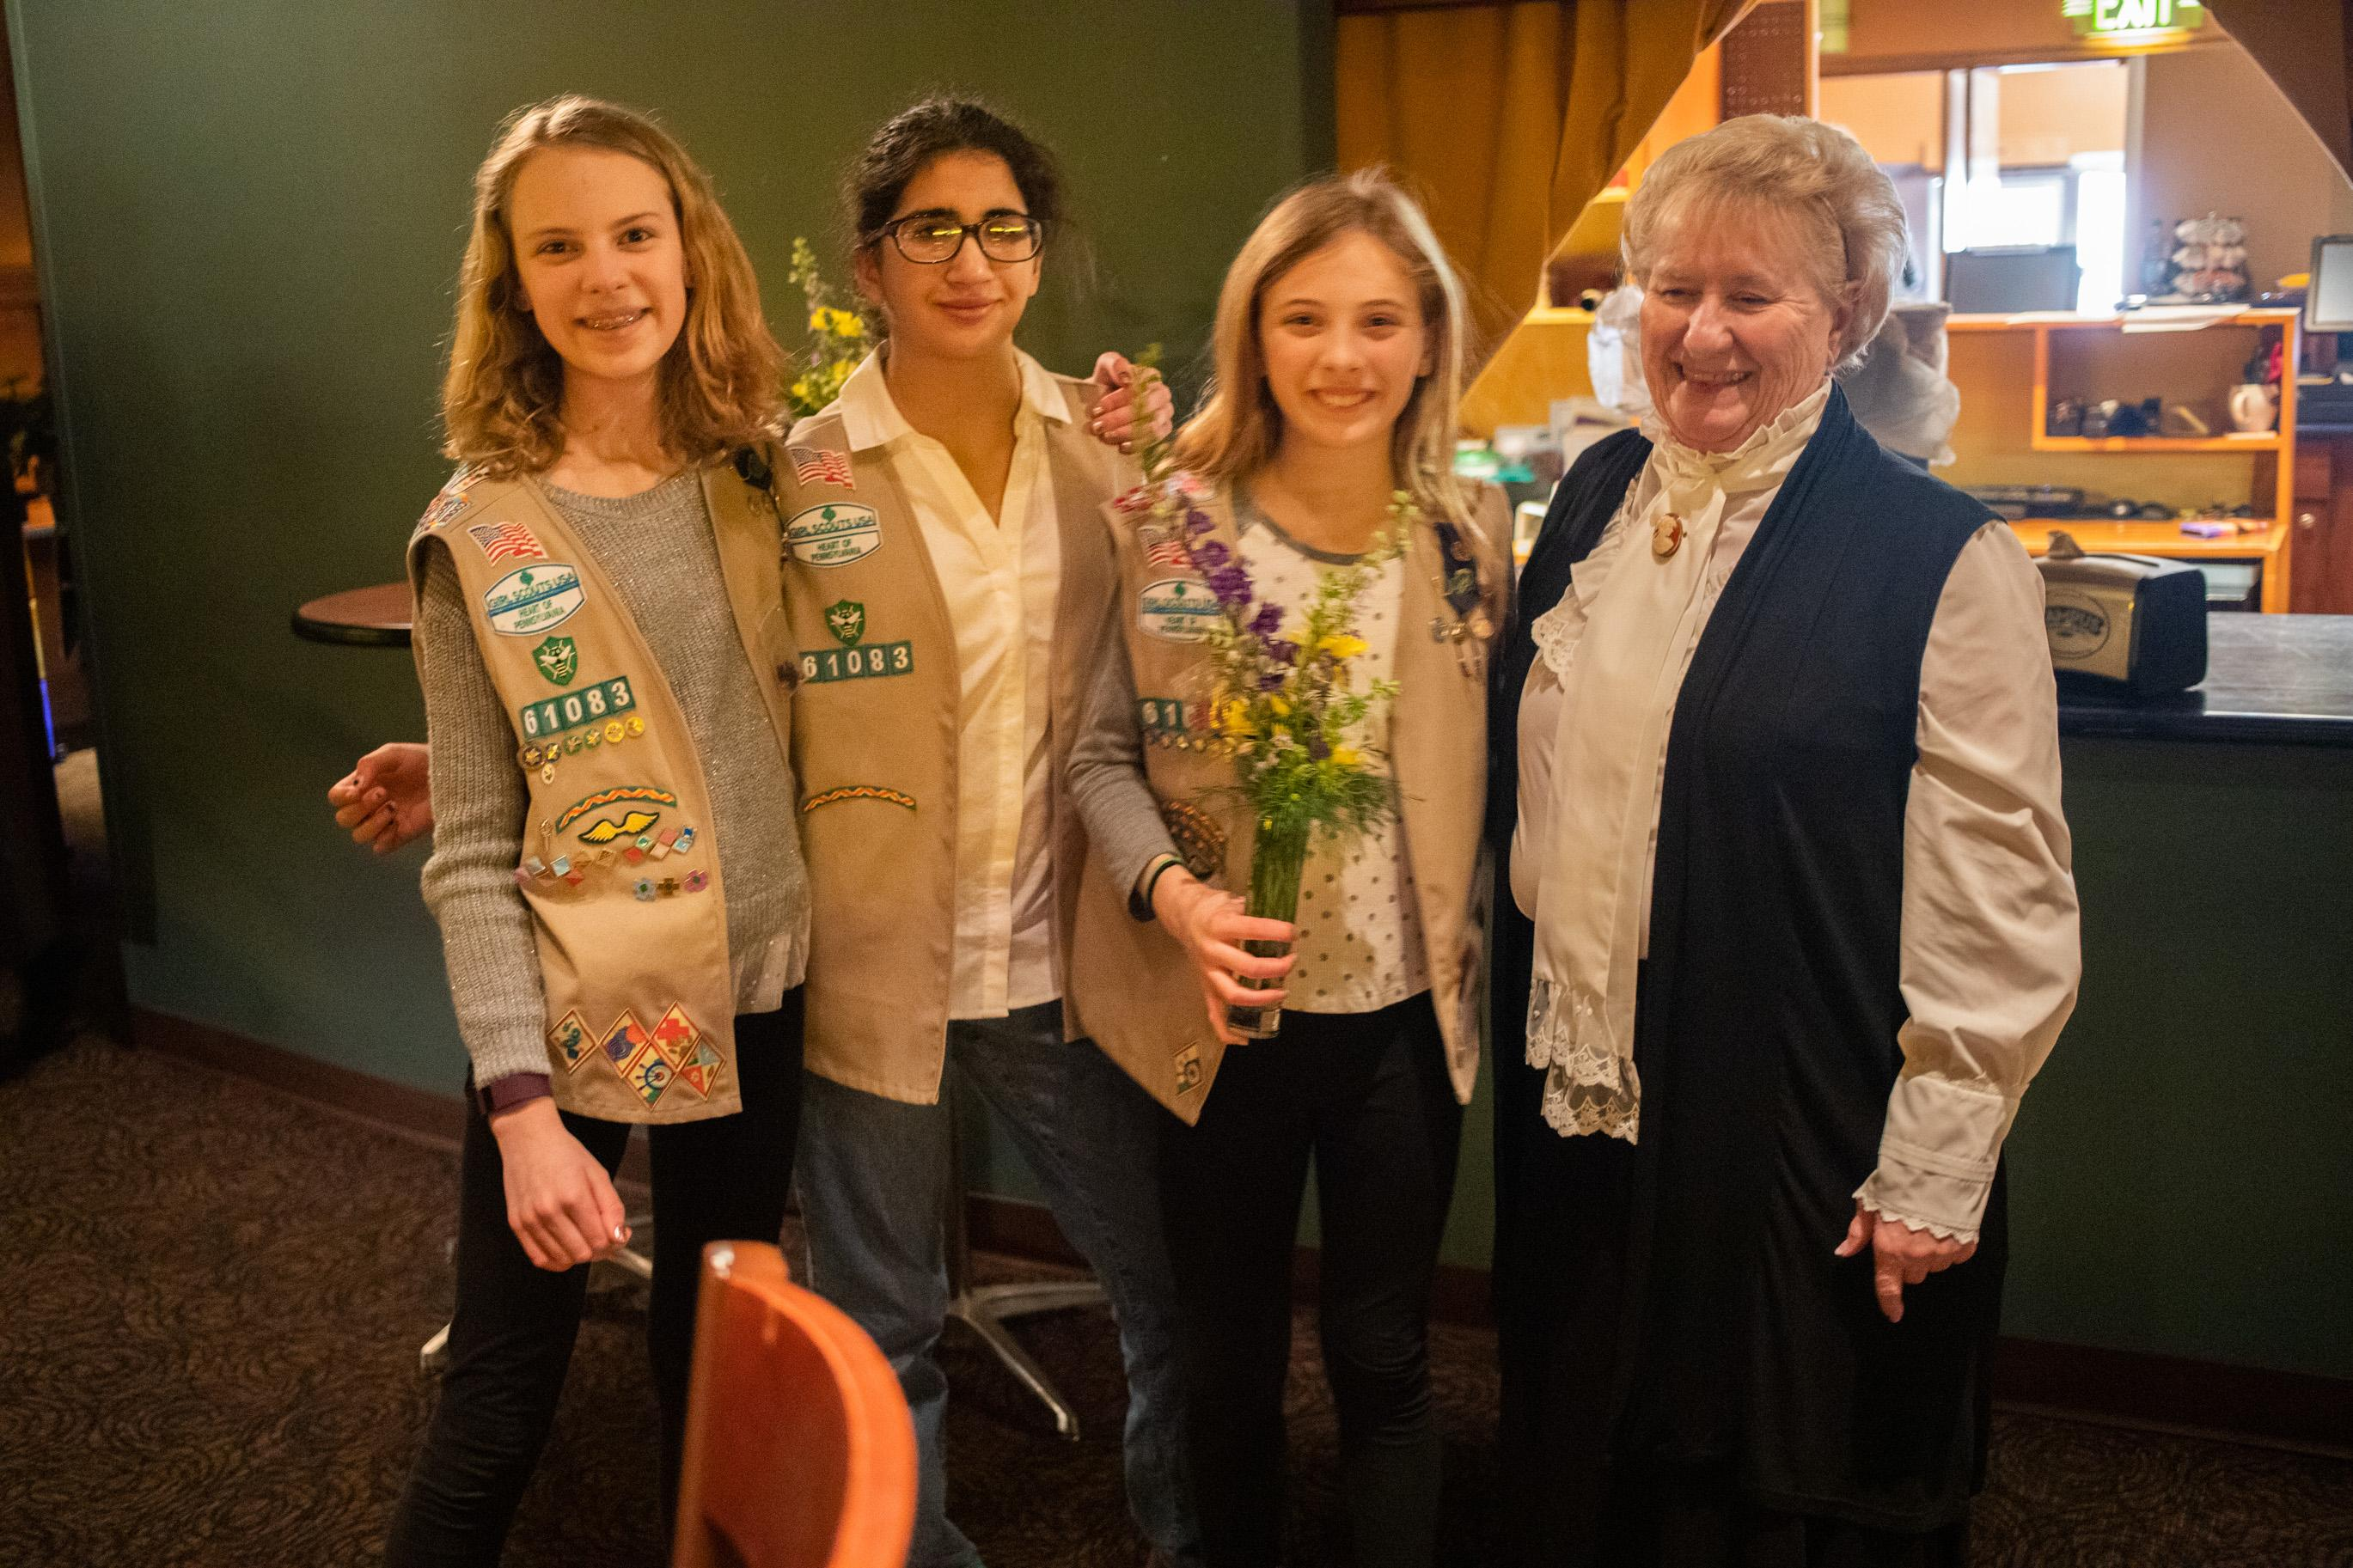 Girls Scouts celebrate 100 Years